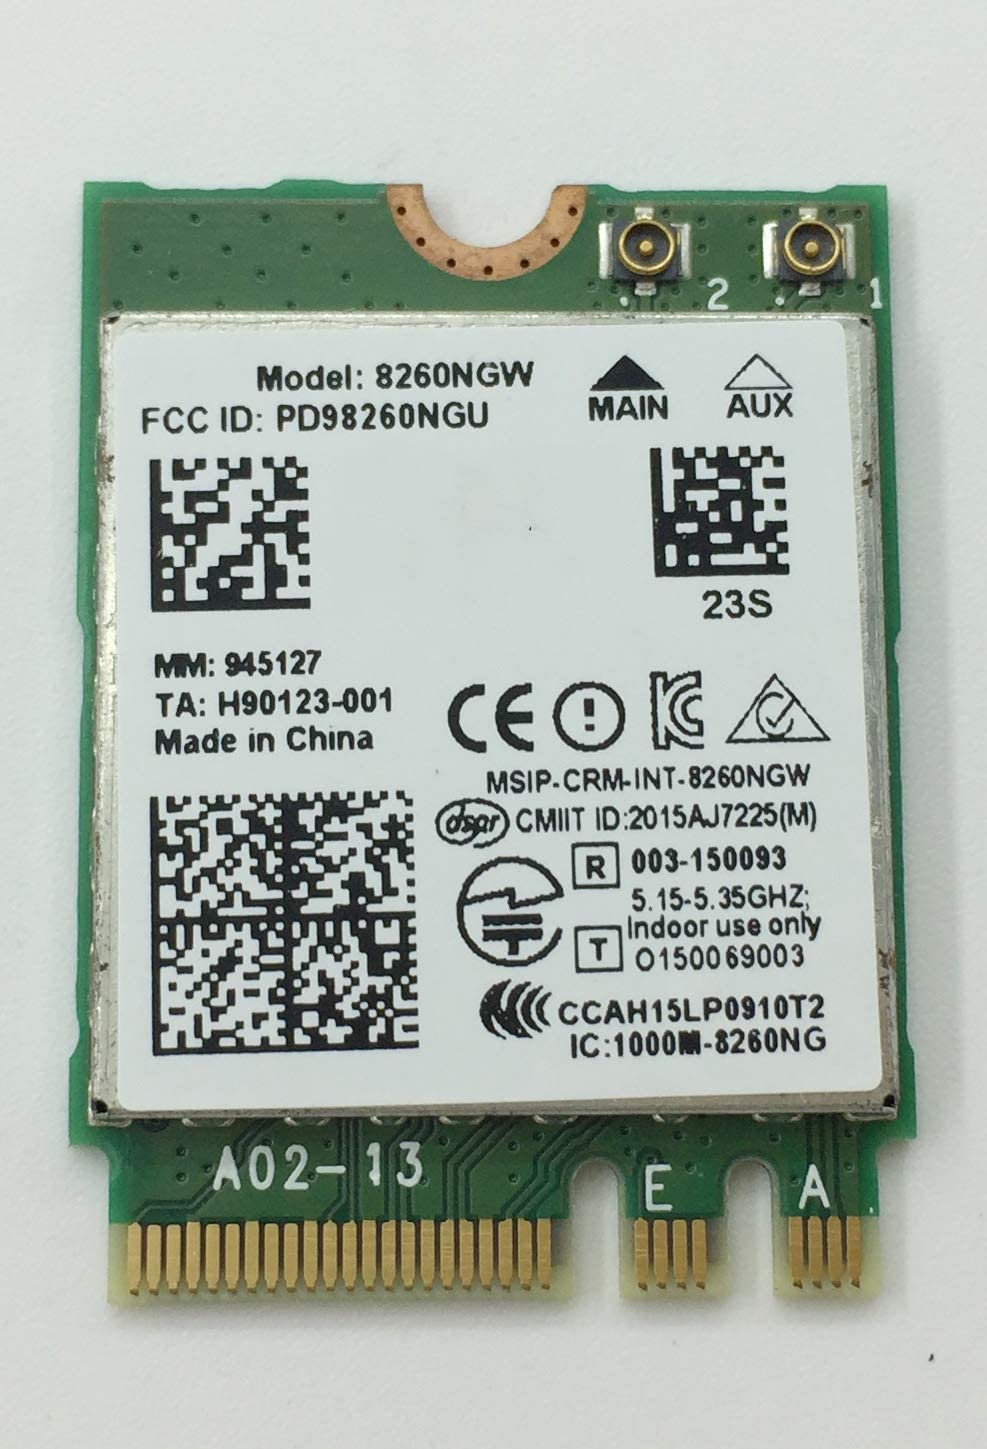 USB 2.0 Wireless WiFi Lan Card for Dell Dimension P75t